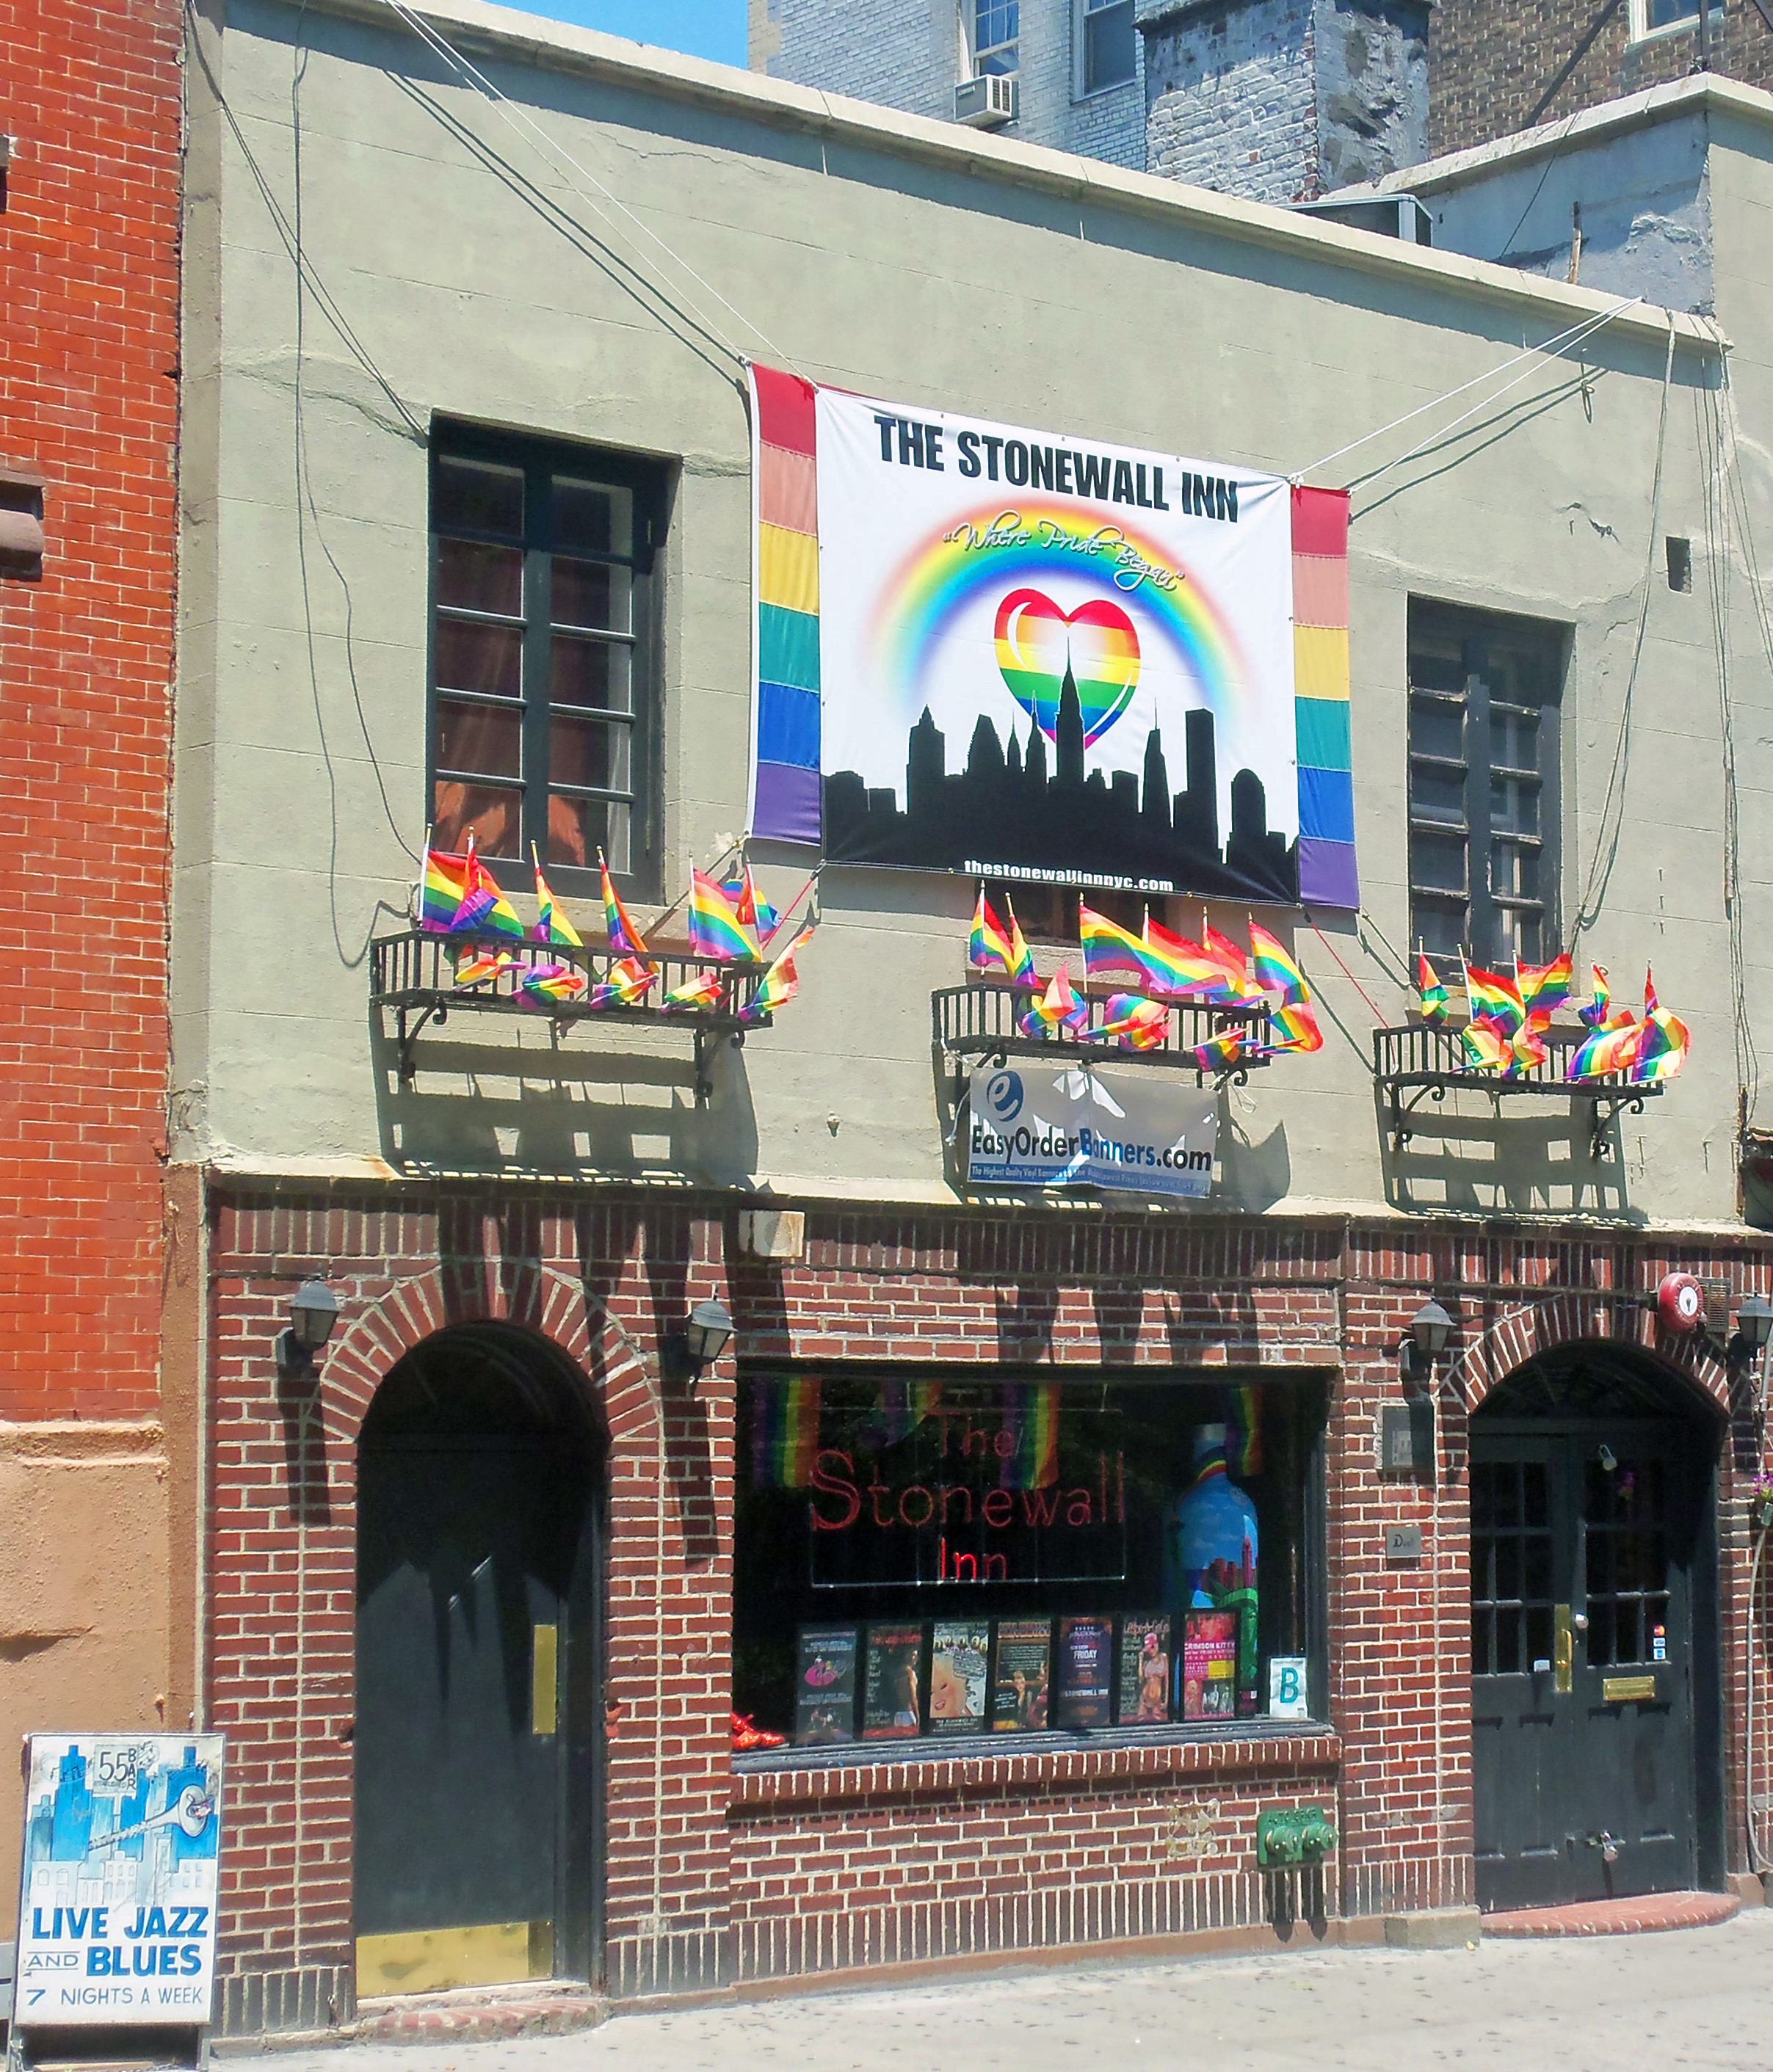 Stonewall 1969: Birth of the Modern Gay Rights Movement